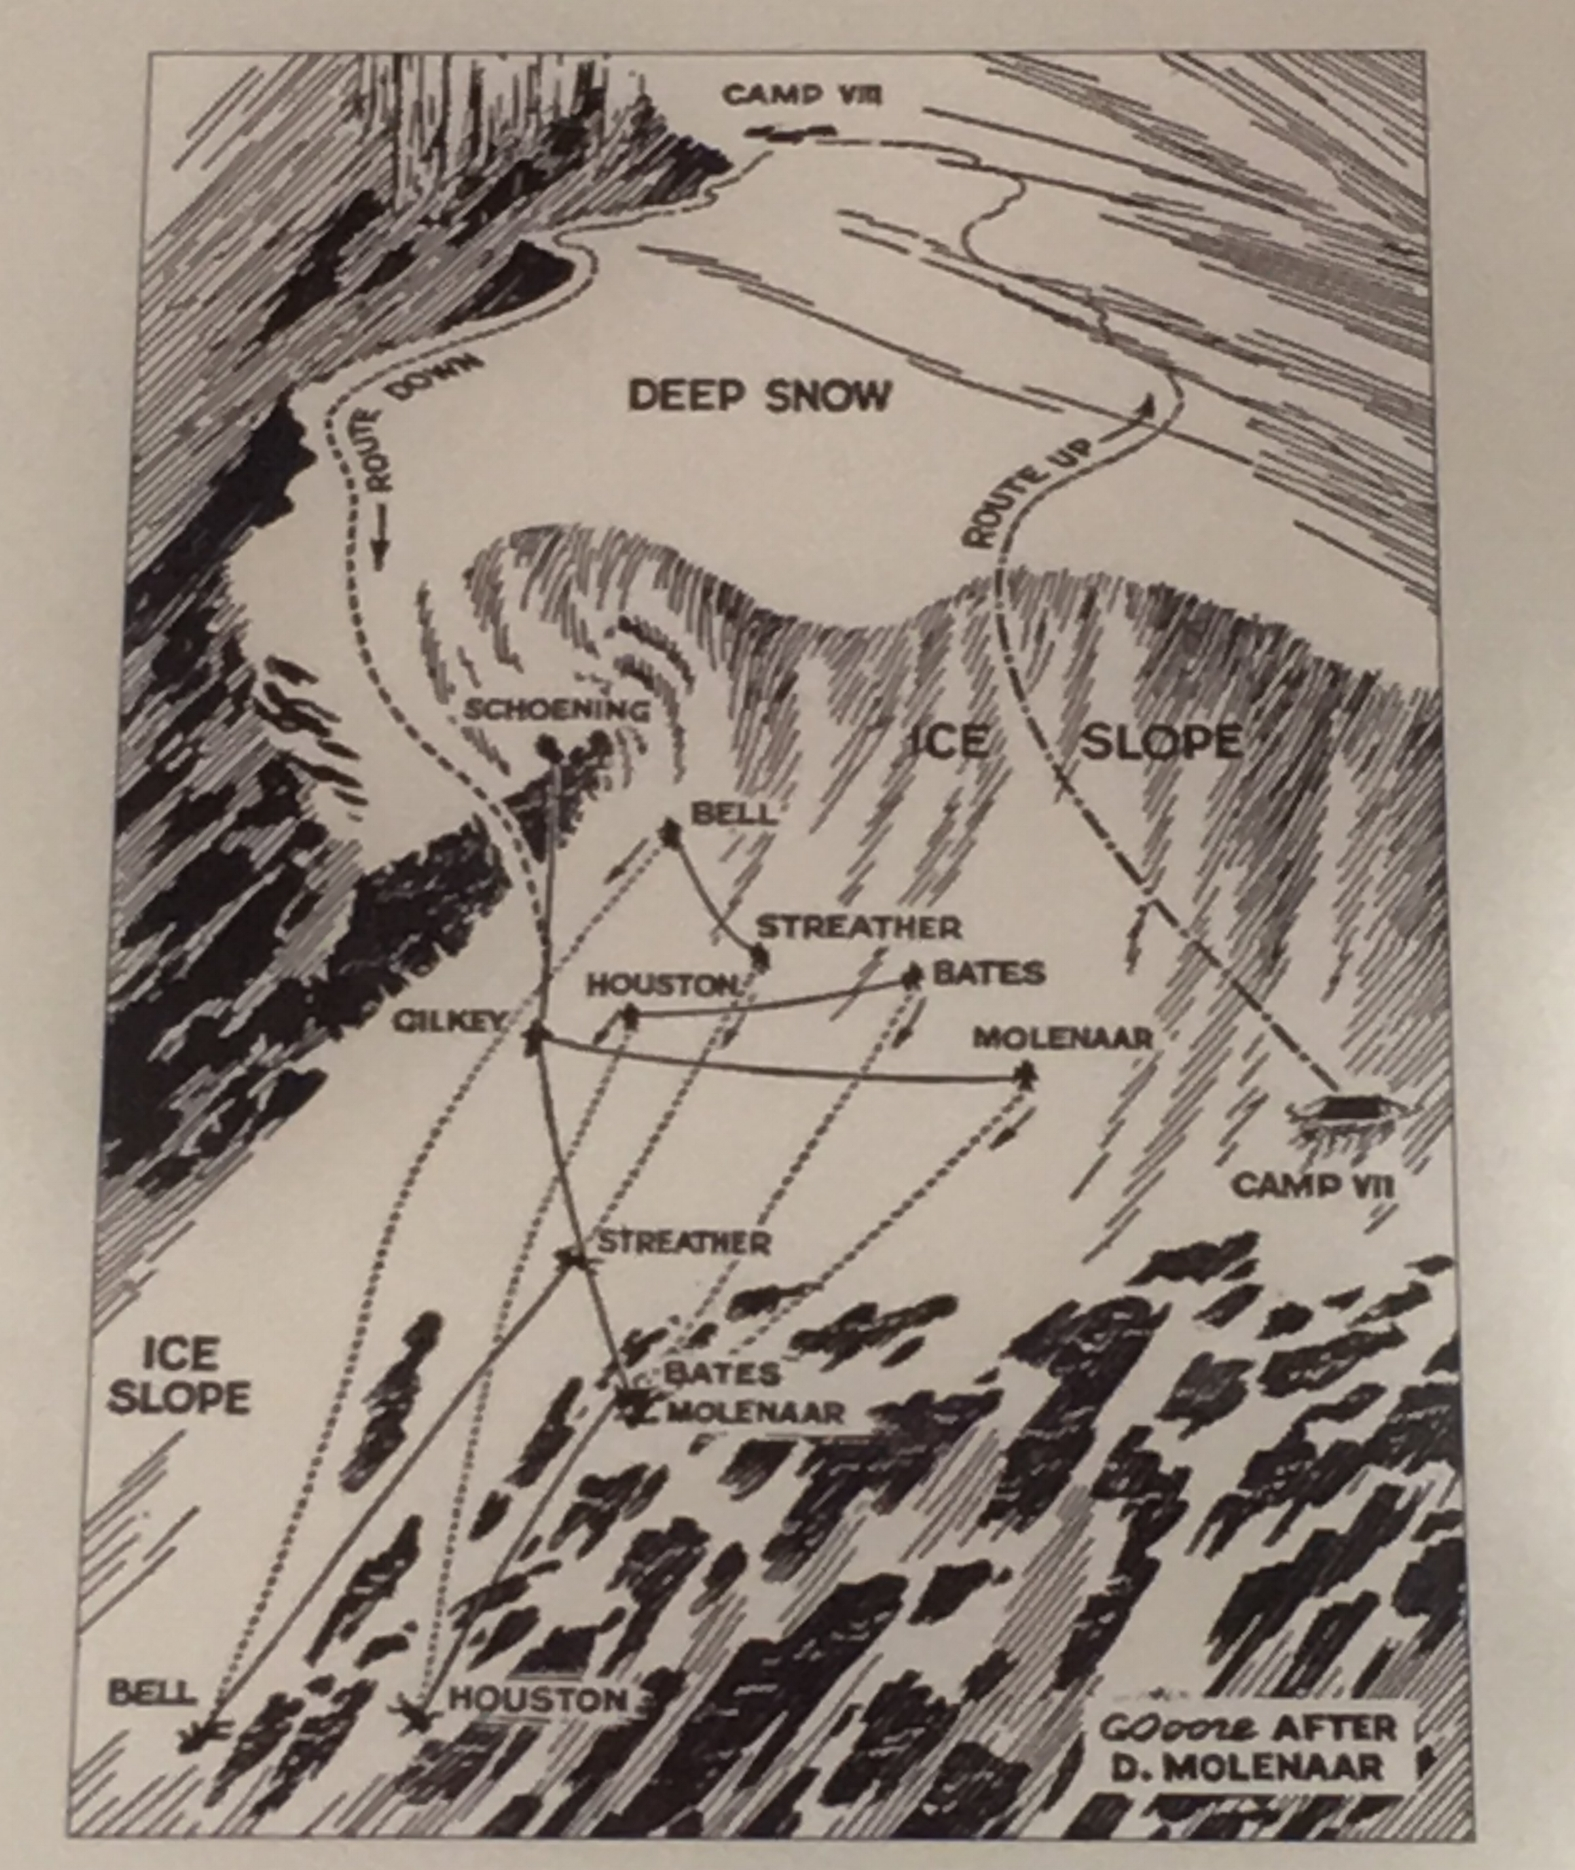 This diagram by Clarence Doore follows an illustration by Dee Molenaar. It is one display at the American Mountaineering Museum.